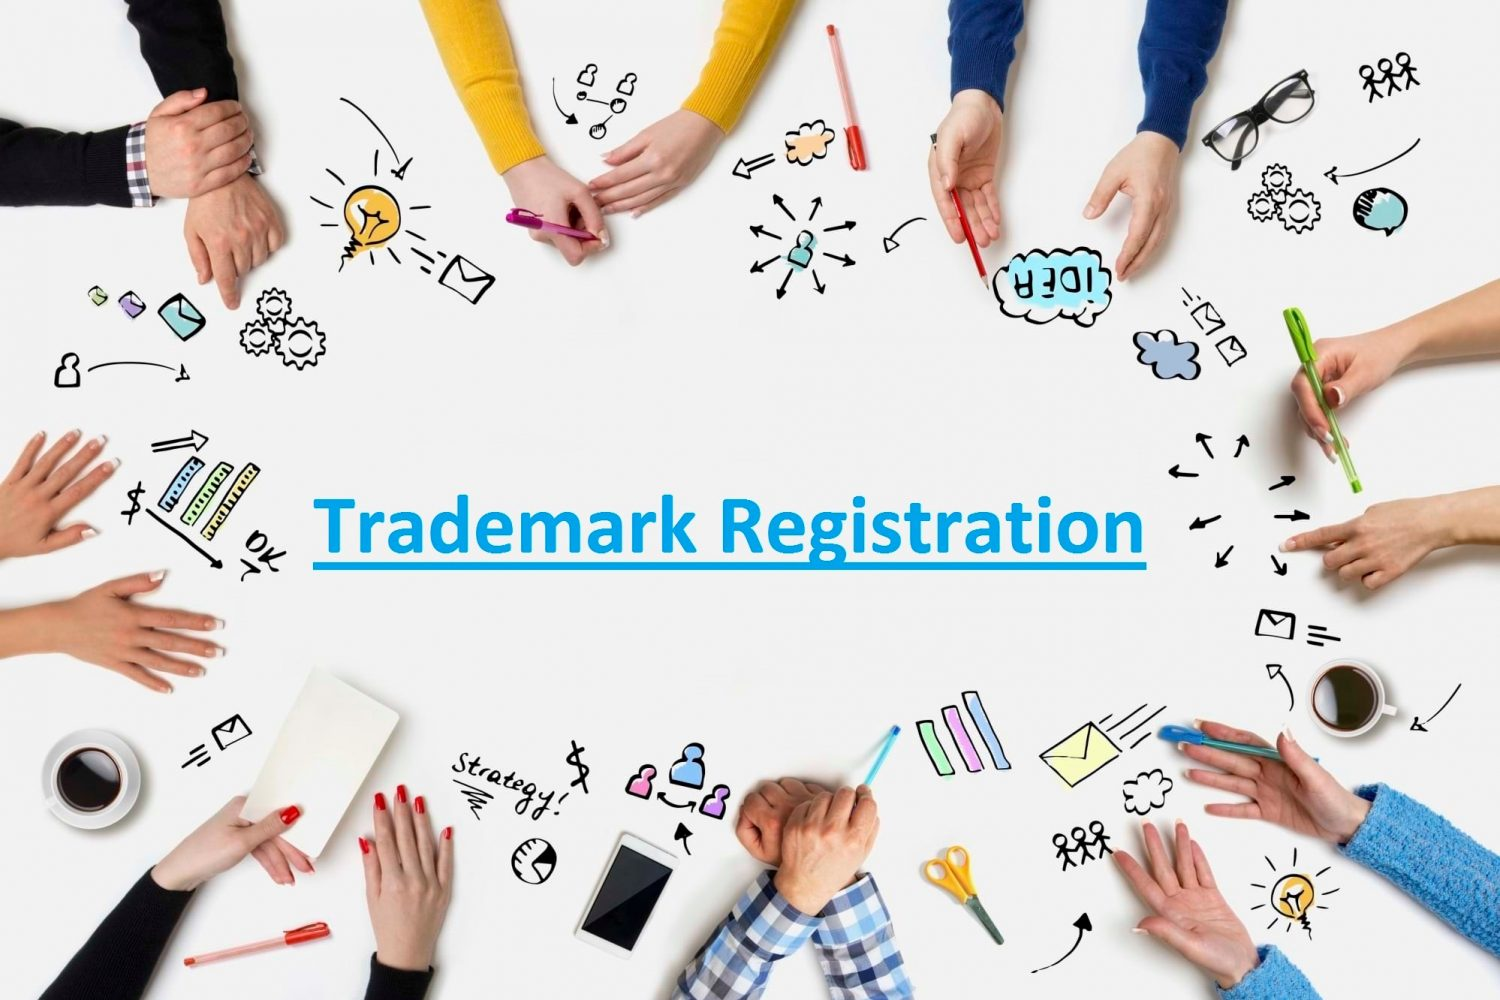 Important points of trademark registration